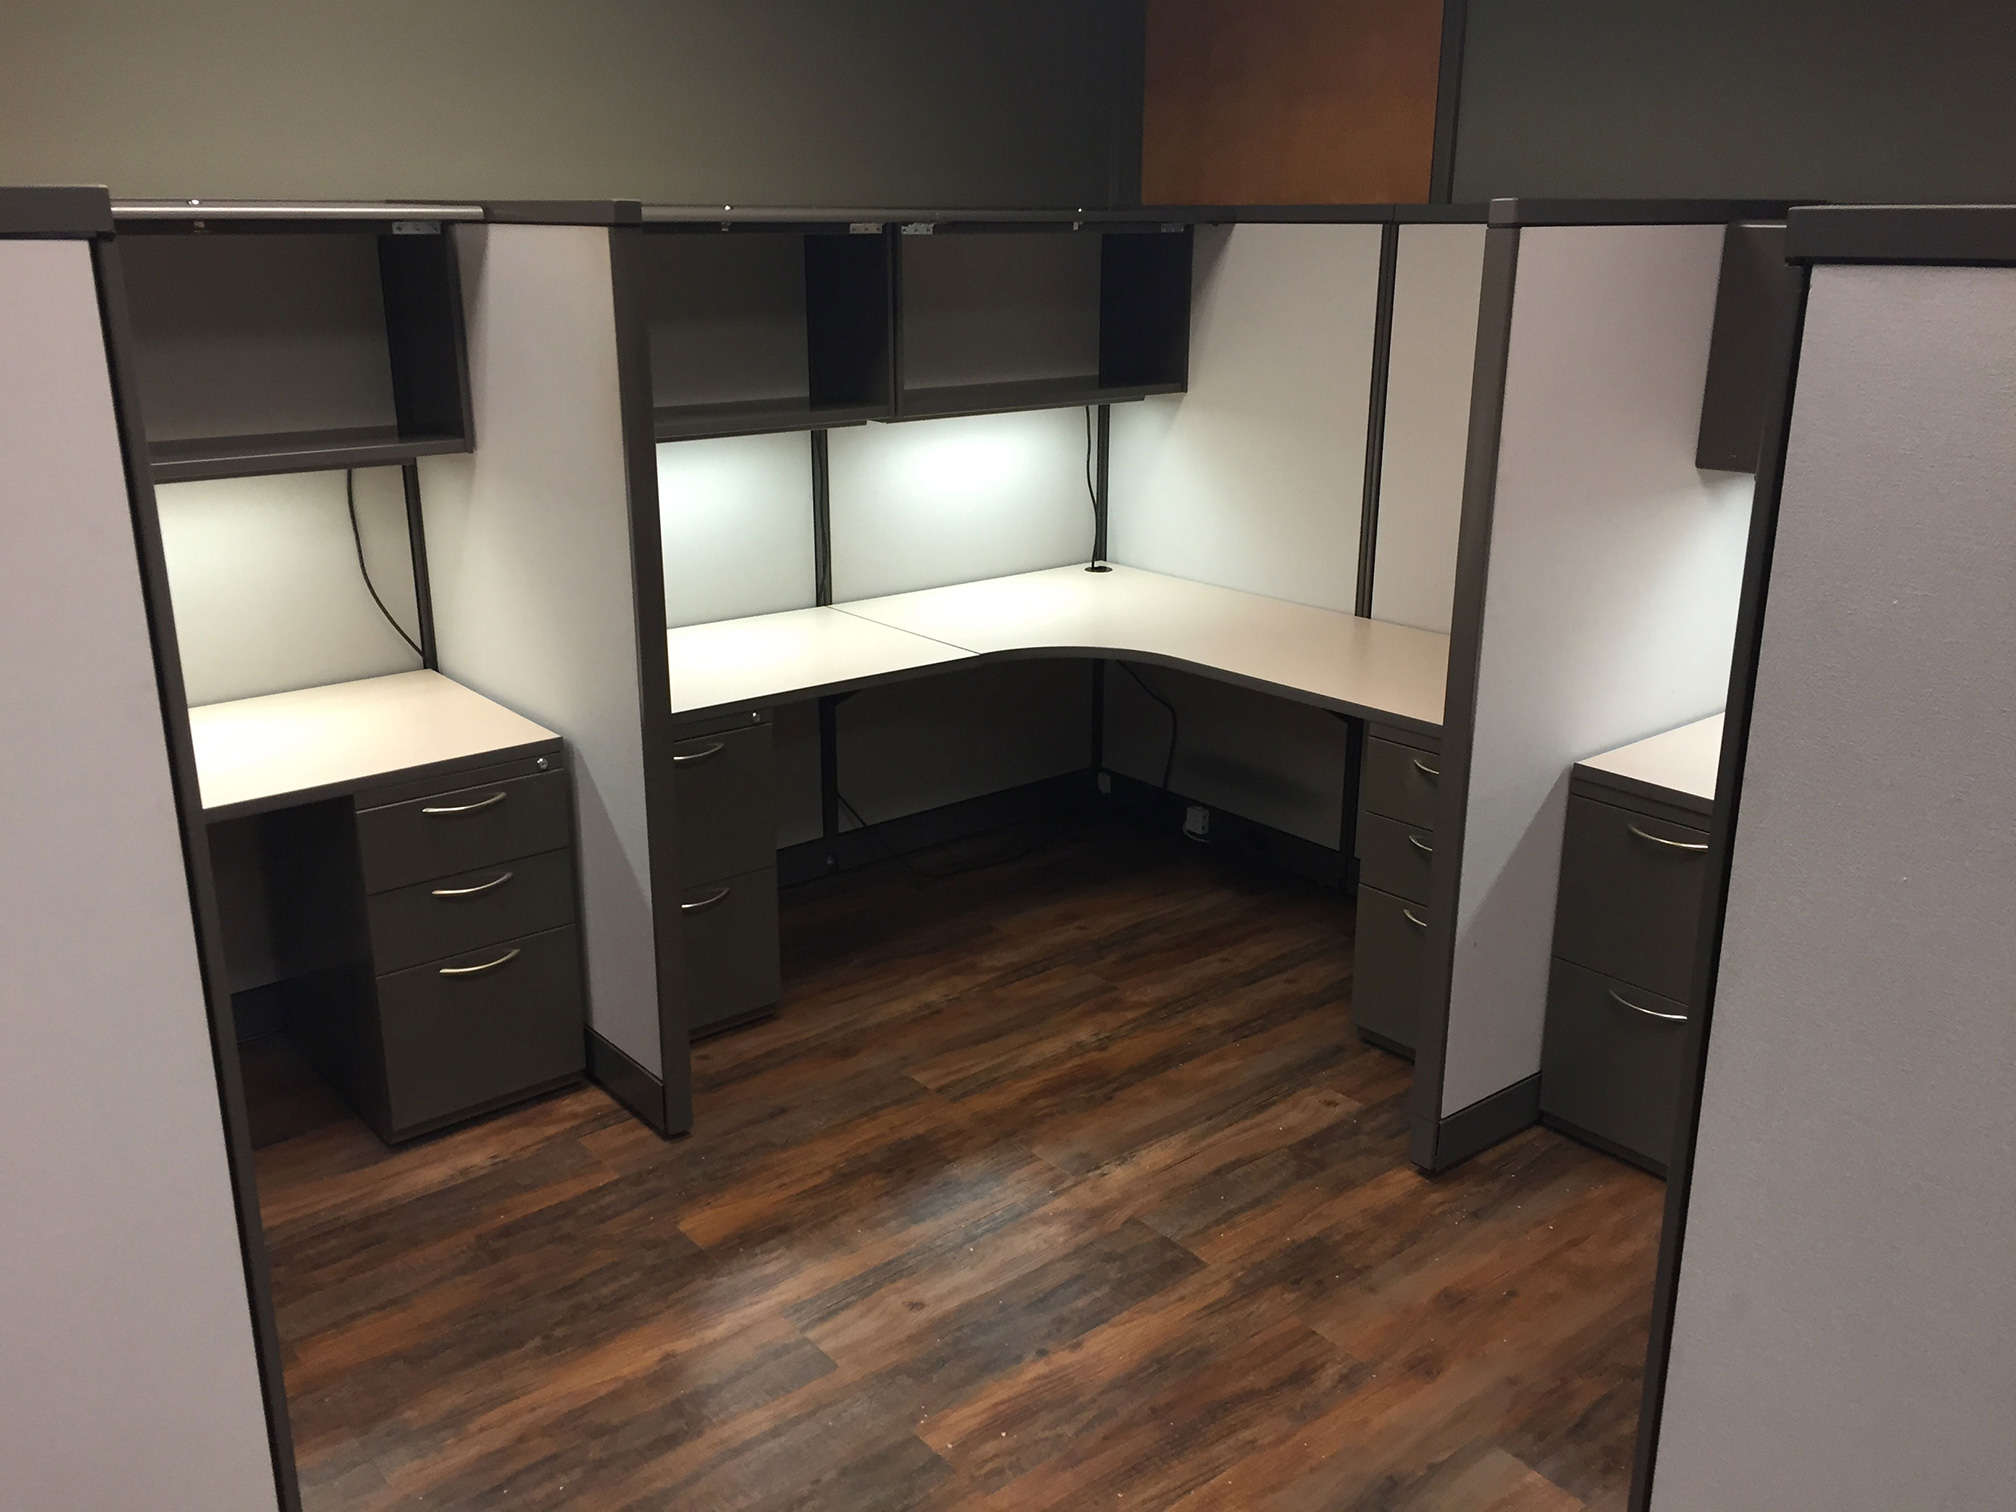 office-cubicles-for-sale-in-boca-raton-florida-3-1.jpg